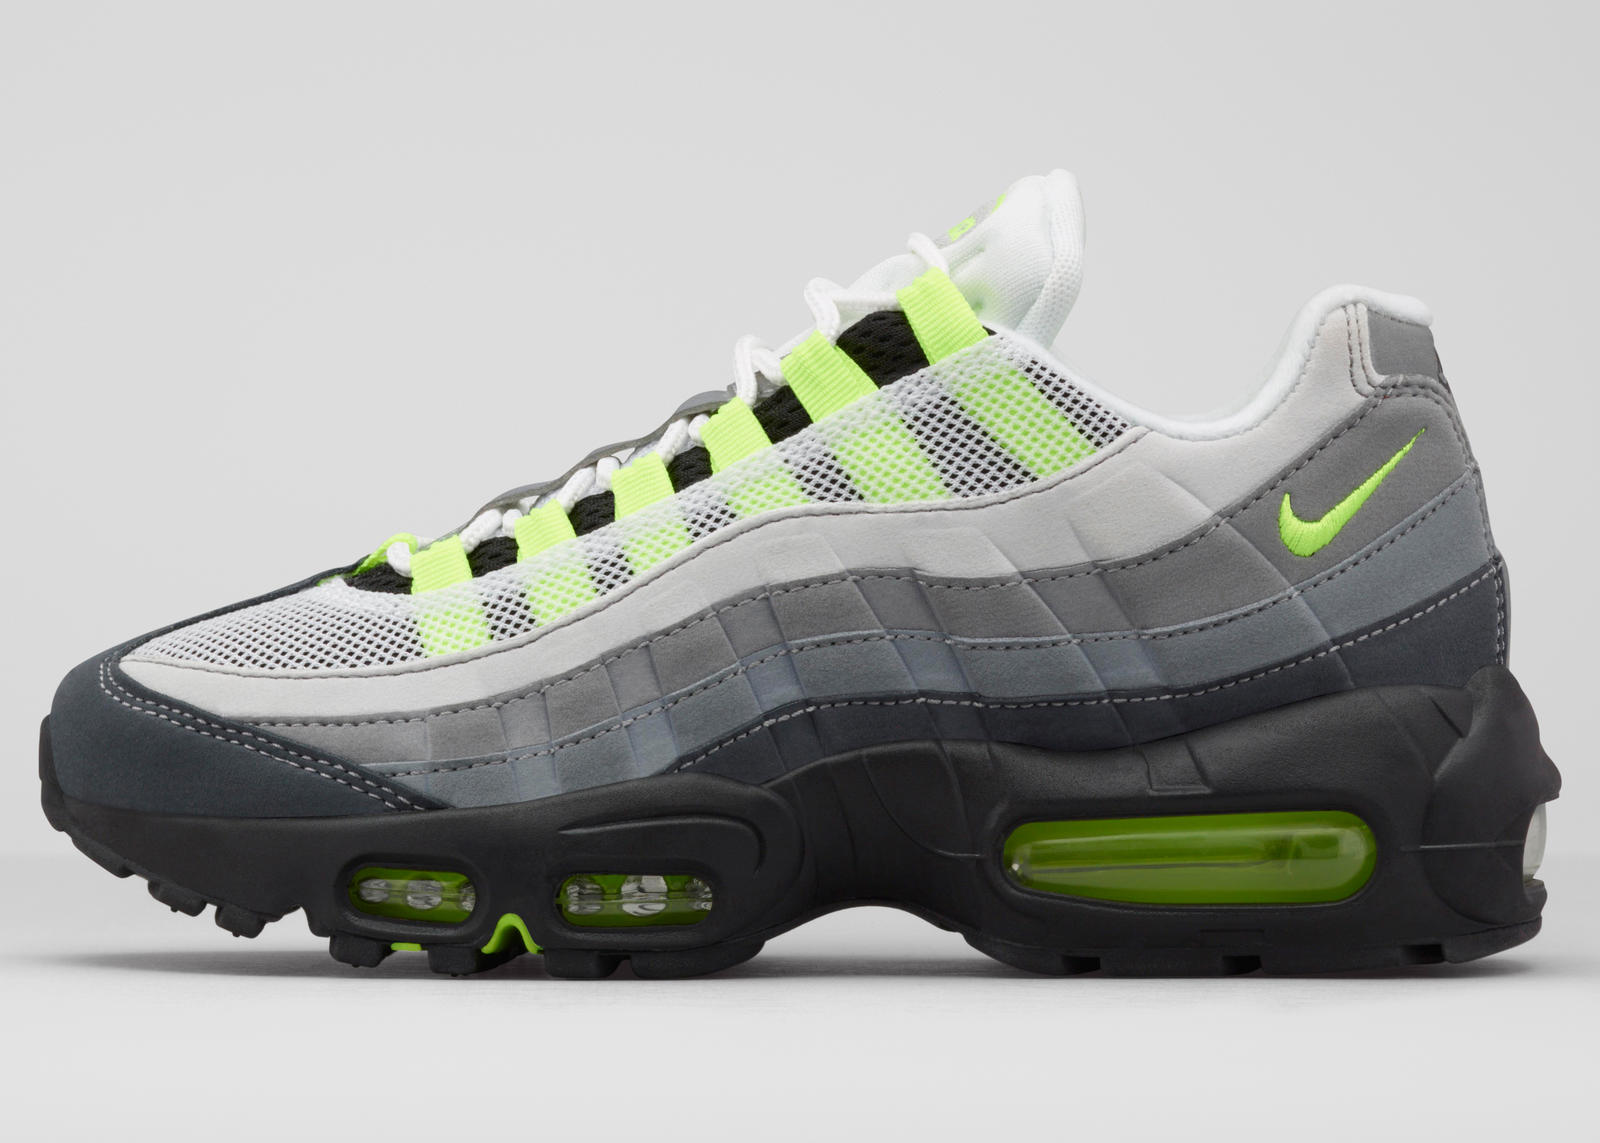 meet 93305 10b6c NIKE AIR MAX 95 OG – Hard 2 Knock Shoppe